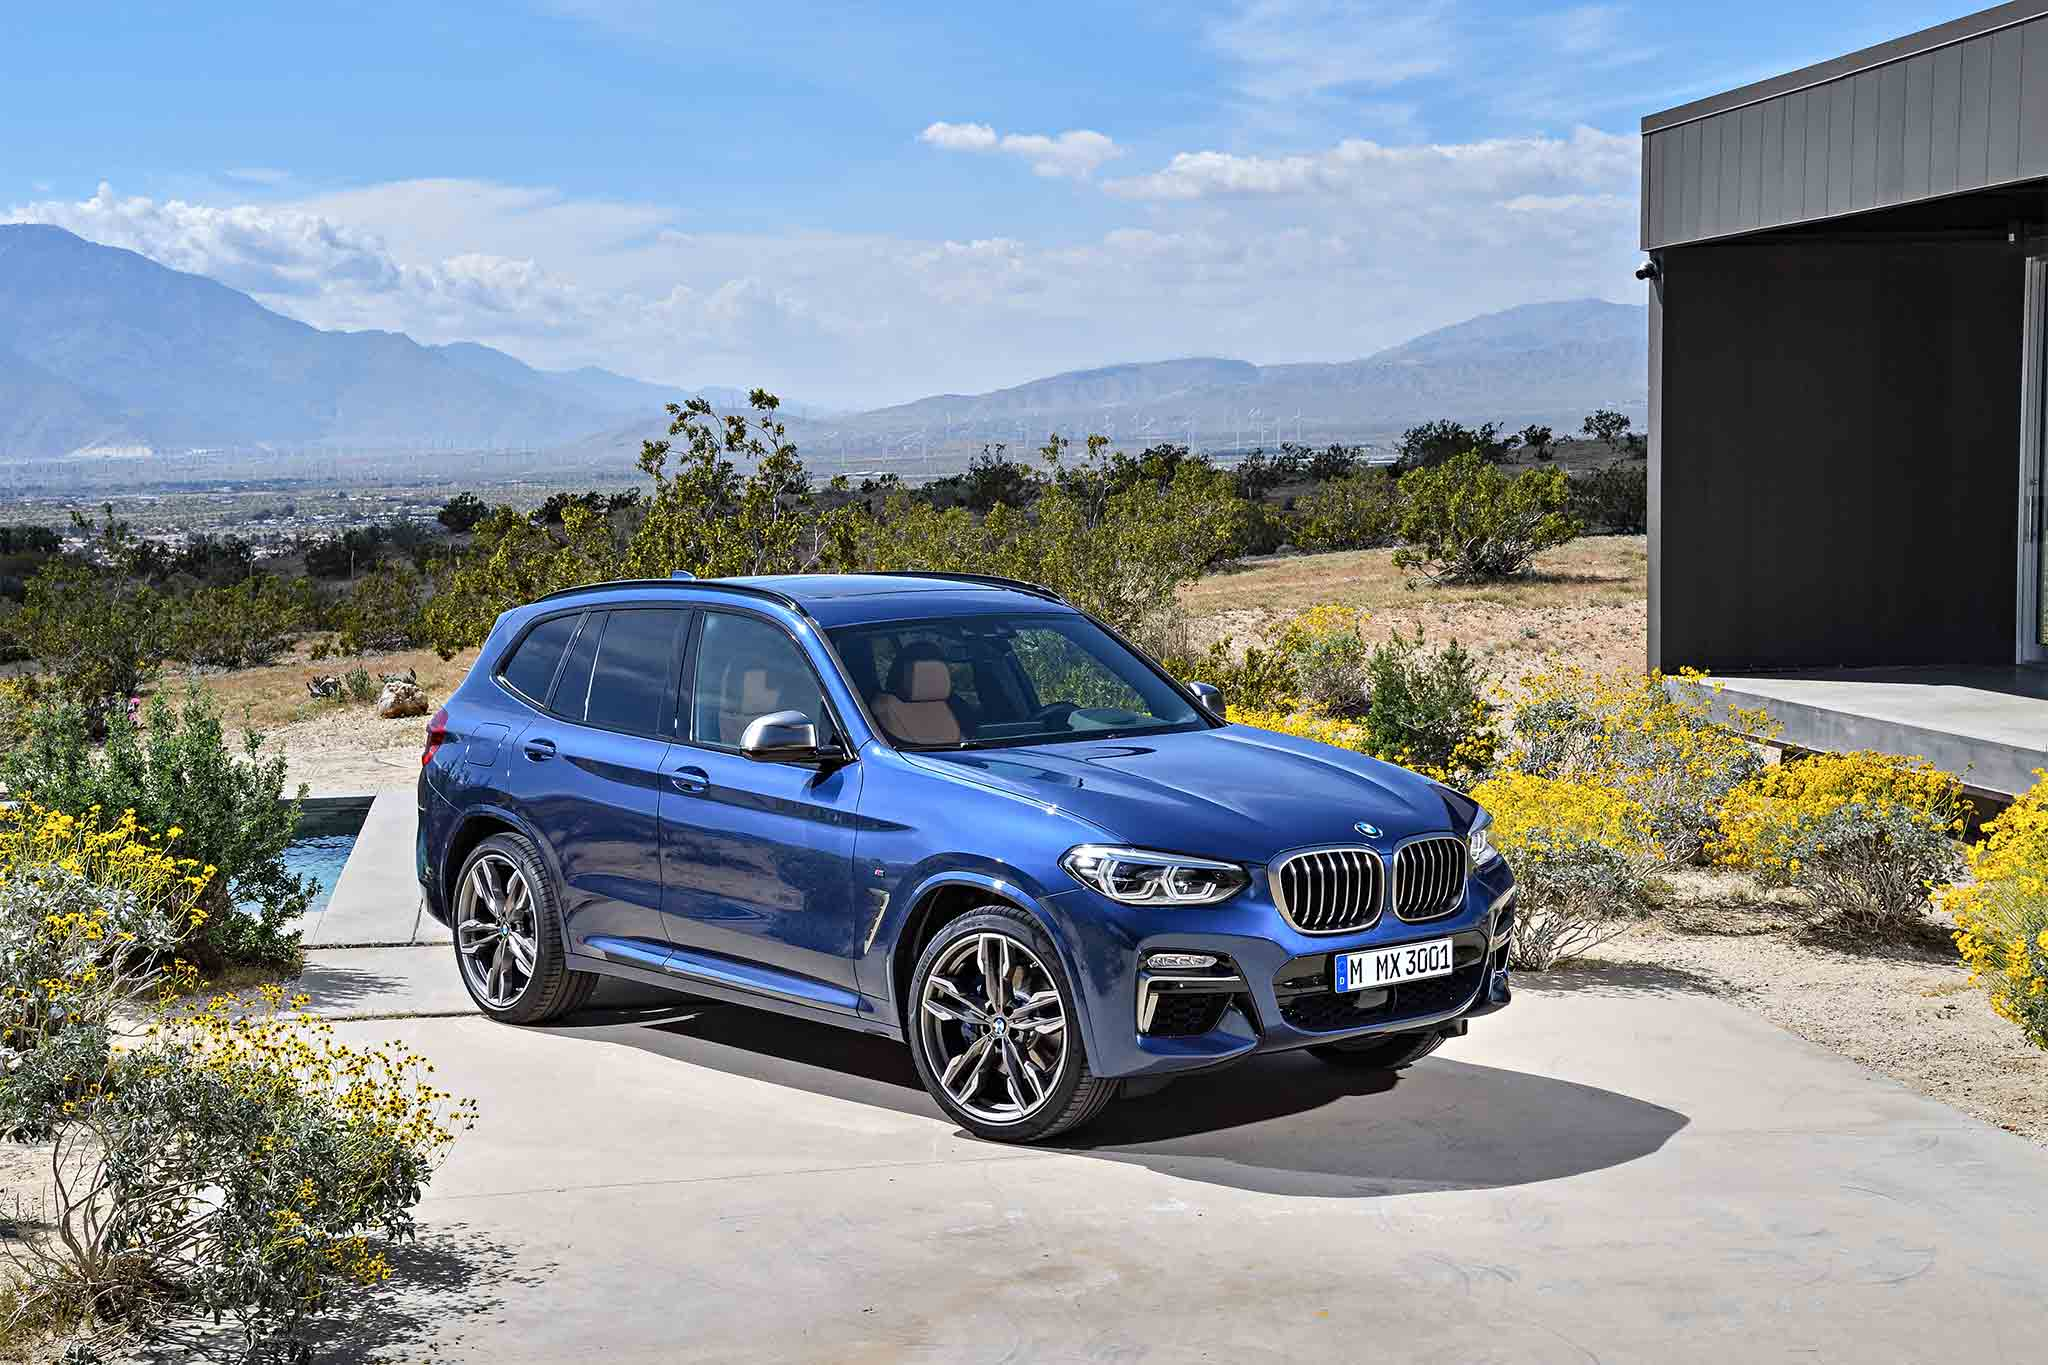 2018 bmw x3 revealed with performance oriented m40i trim. Black Bedroom Furniture Sets. Home Design Ideas